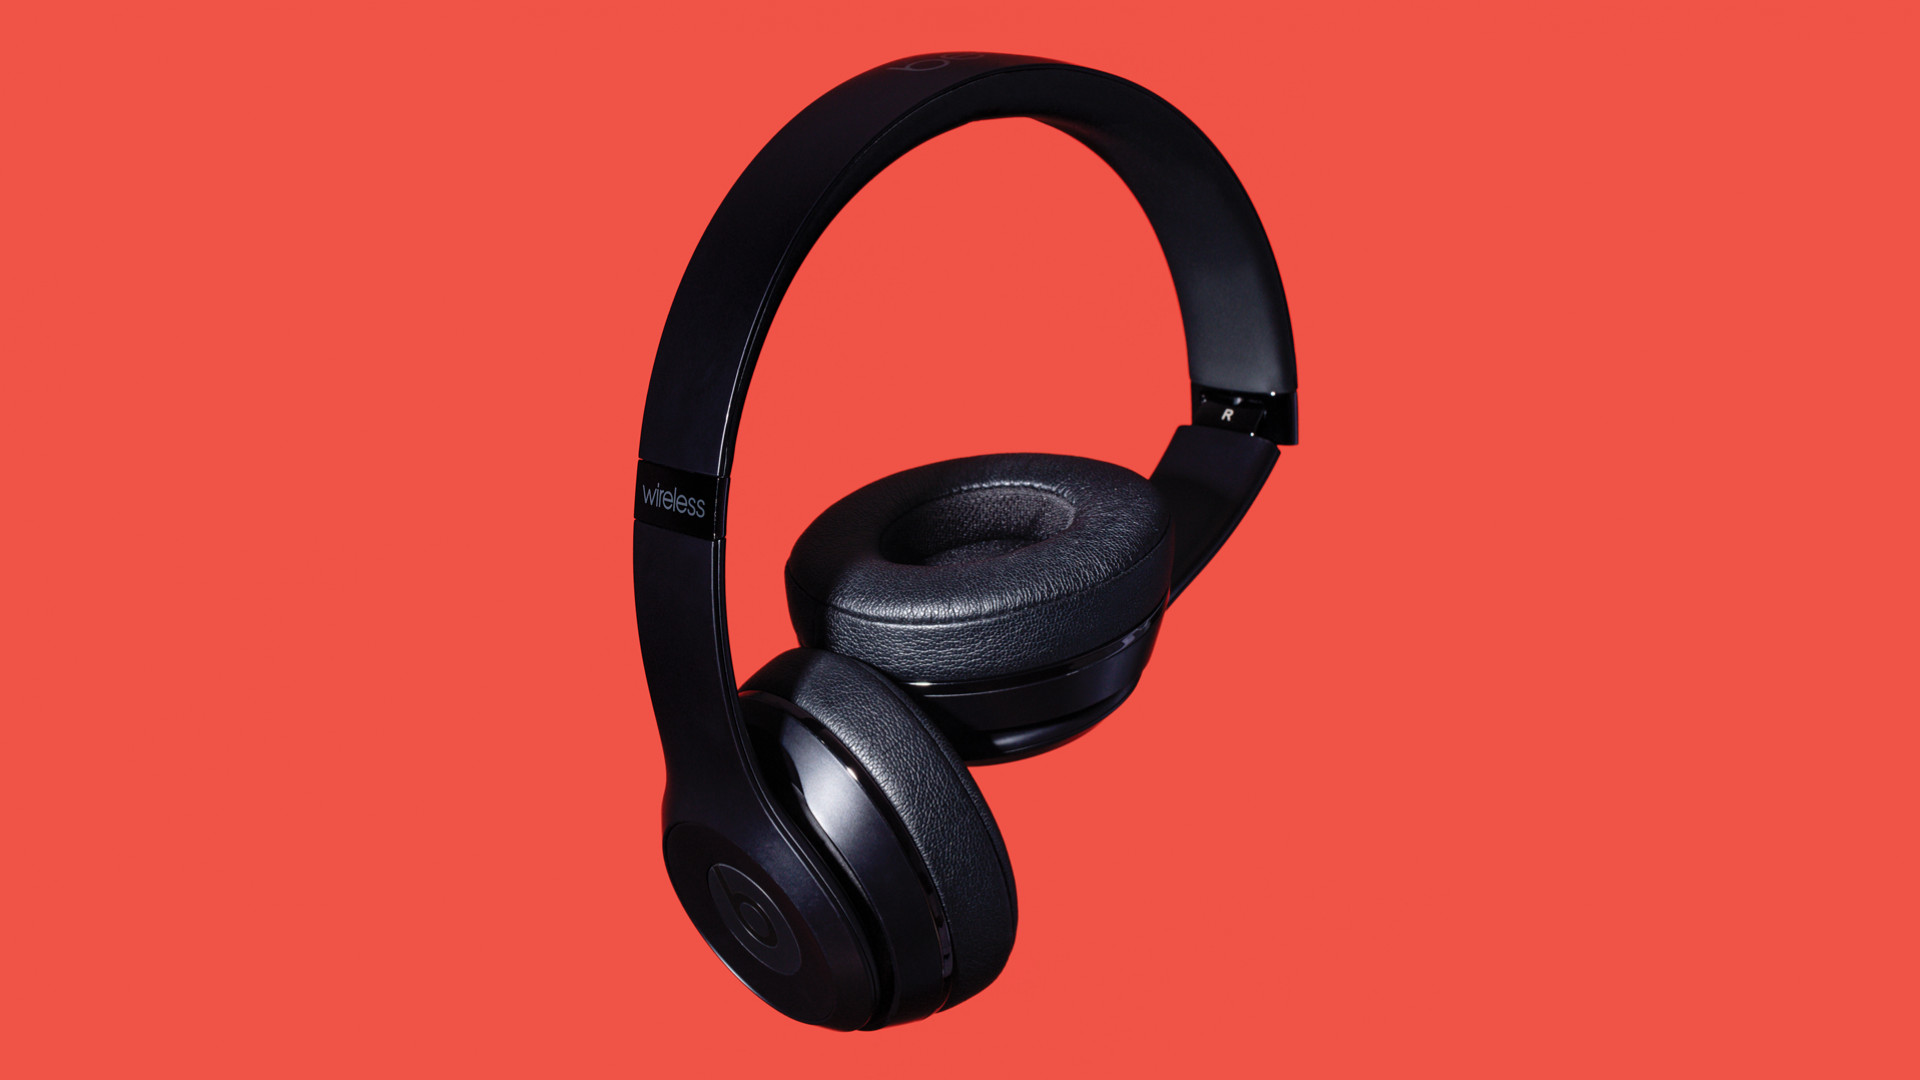 Beats Solo3 wireless bluetooth headphones